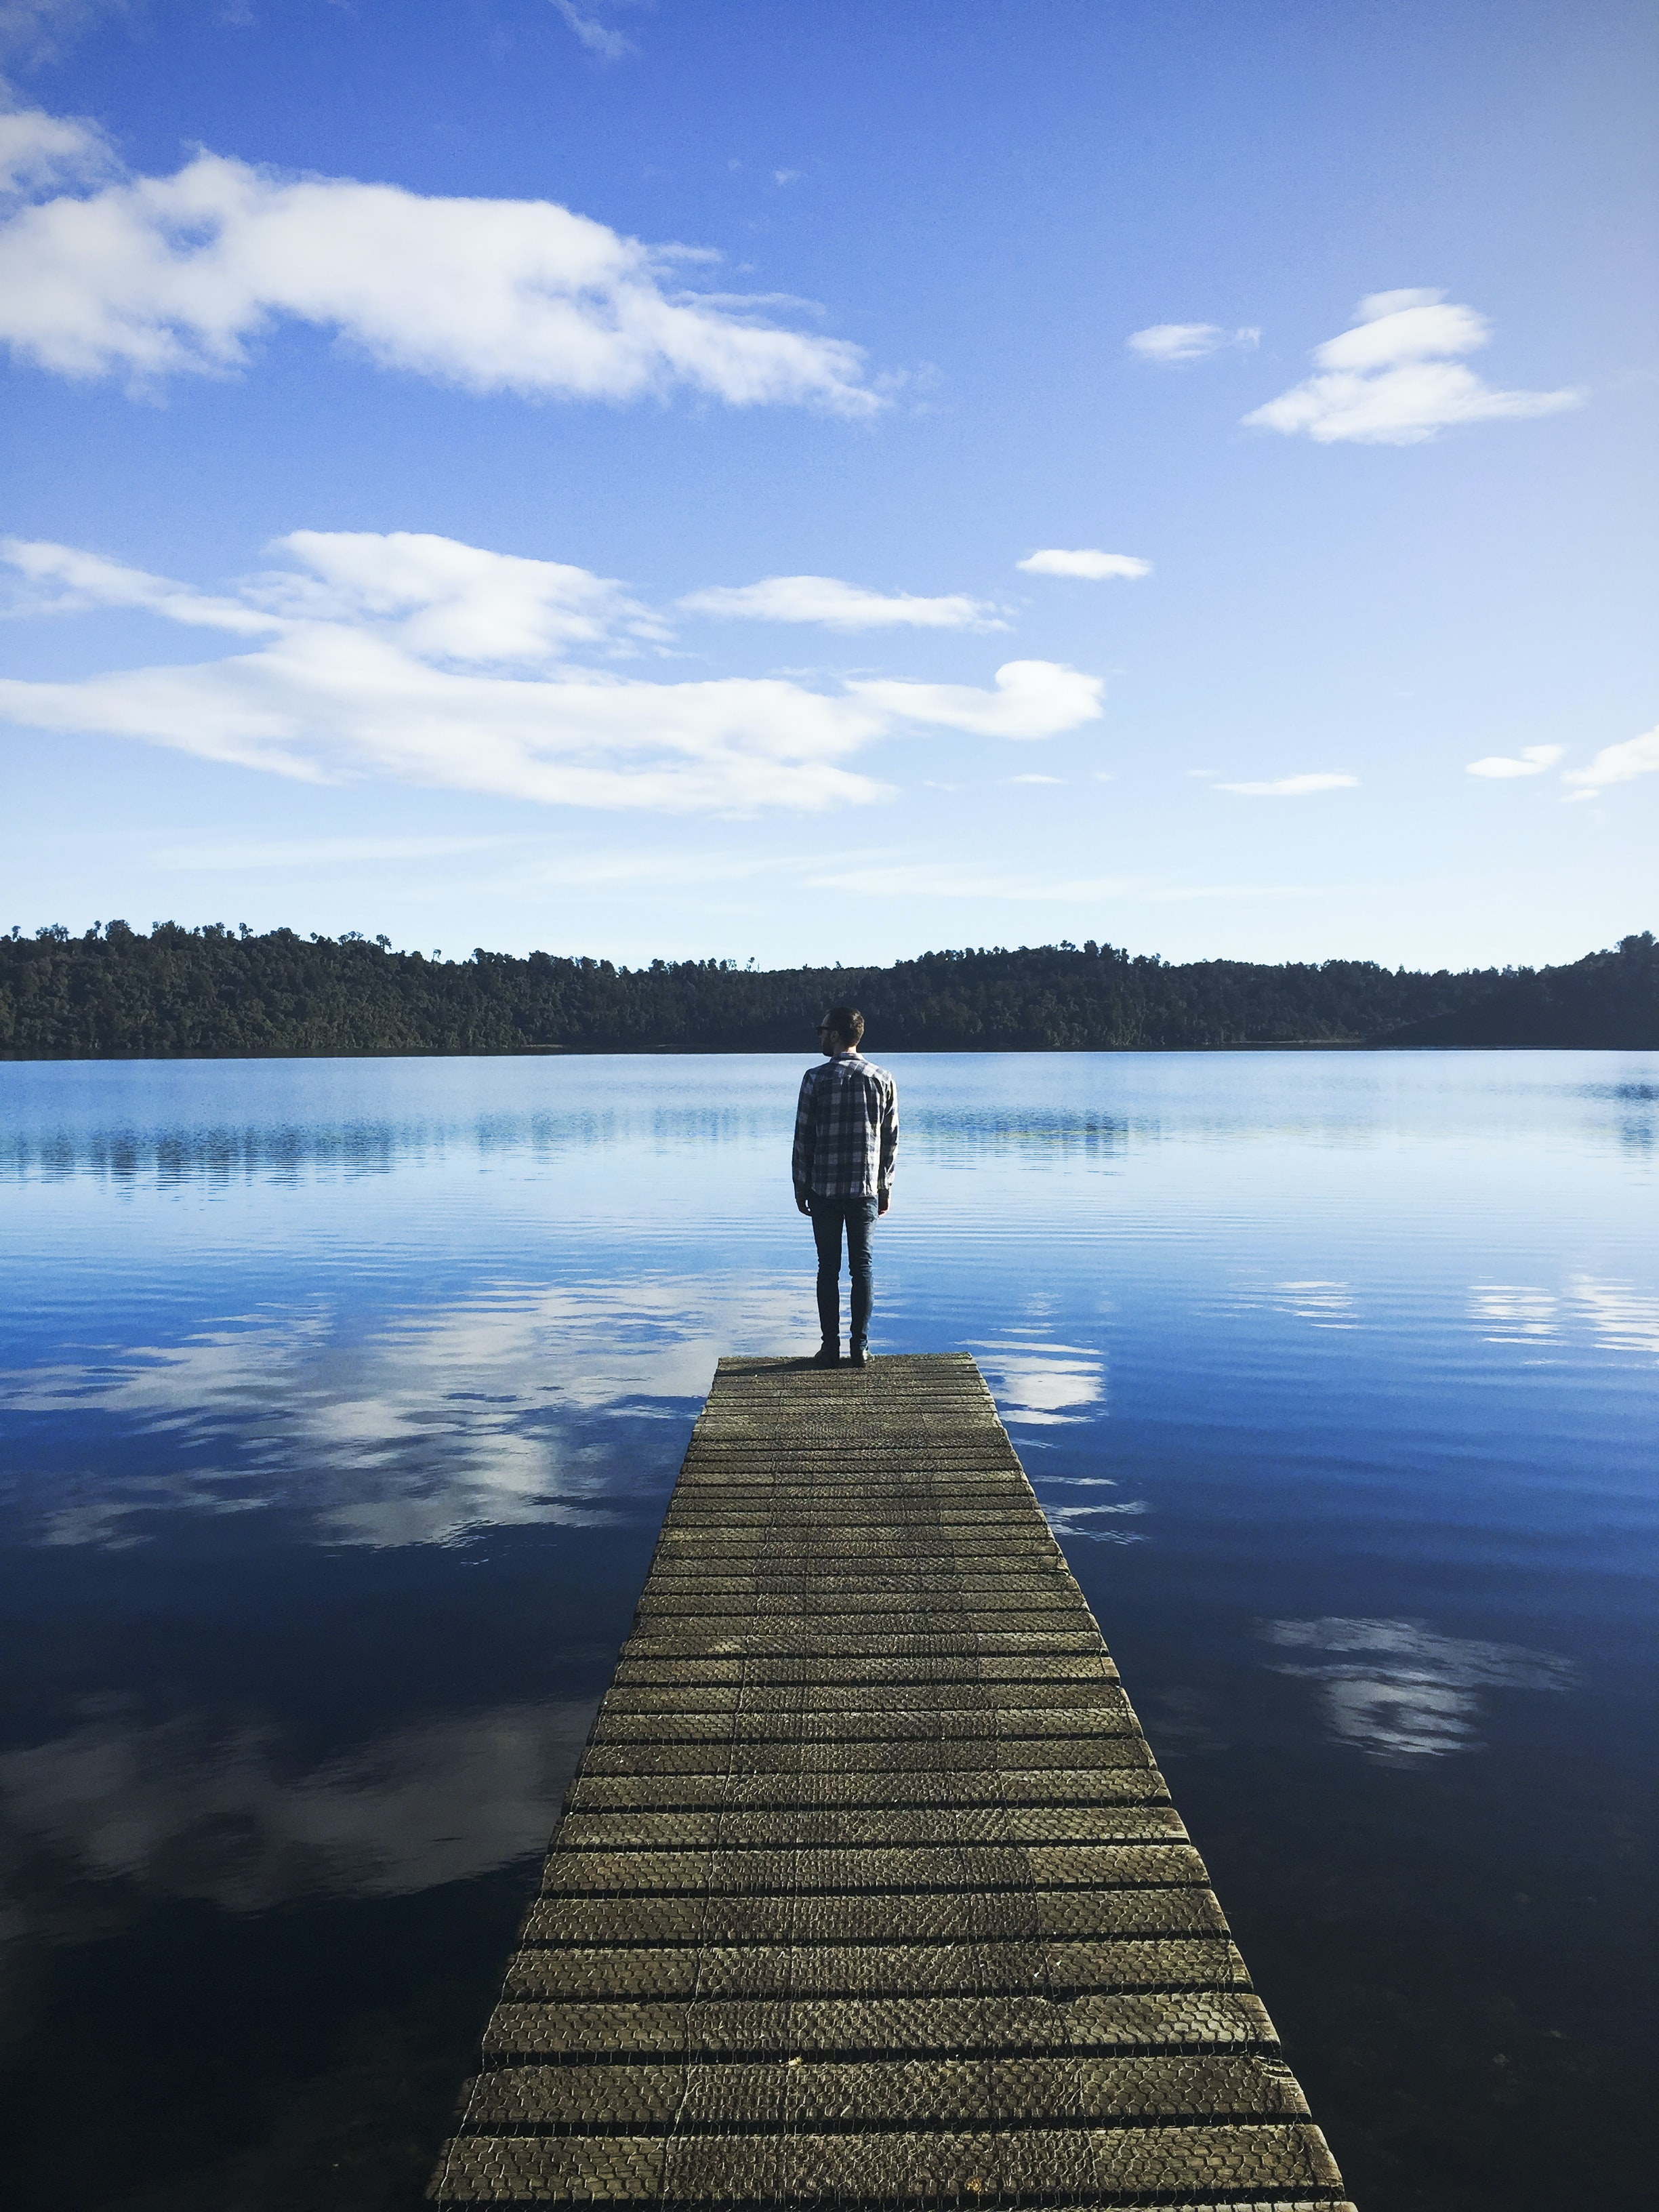 A man wearing a flannel standing on the edge of a dock on a lake that is reflecting the blue sky and clouds